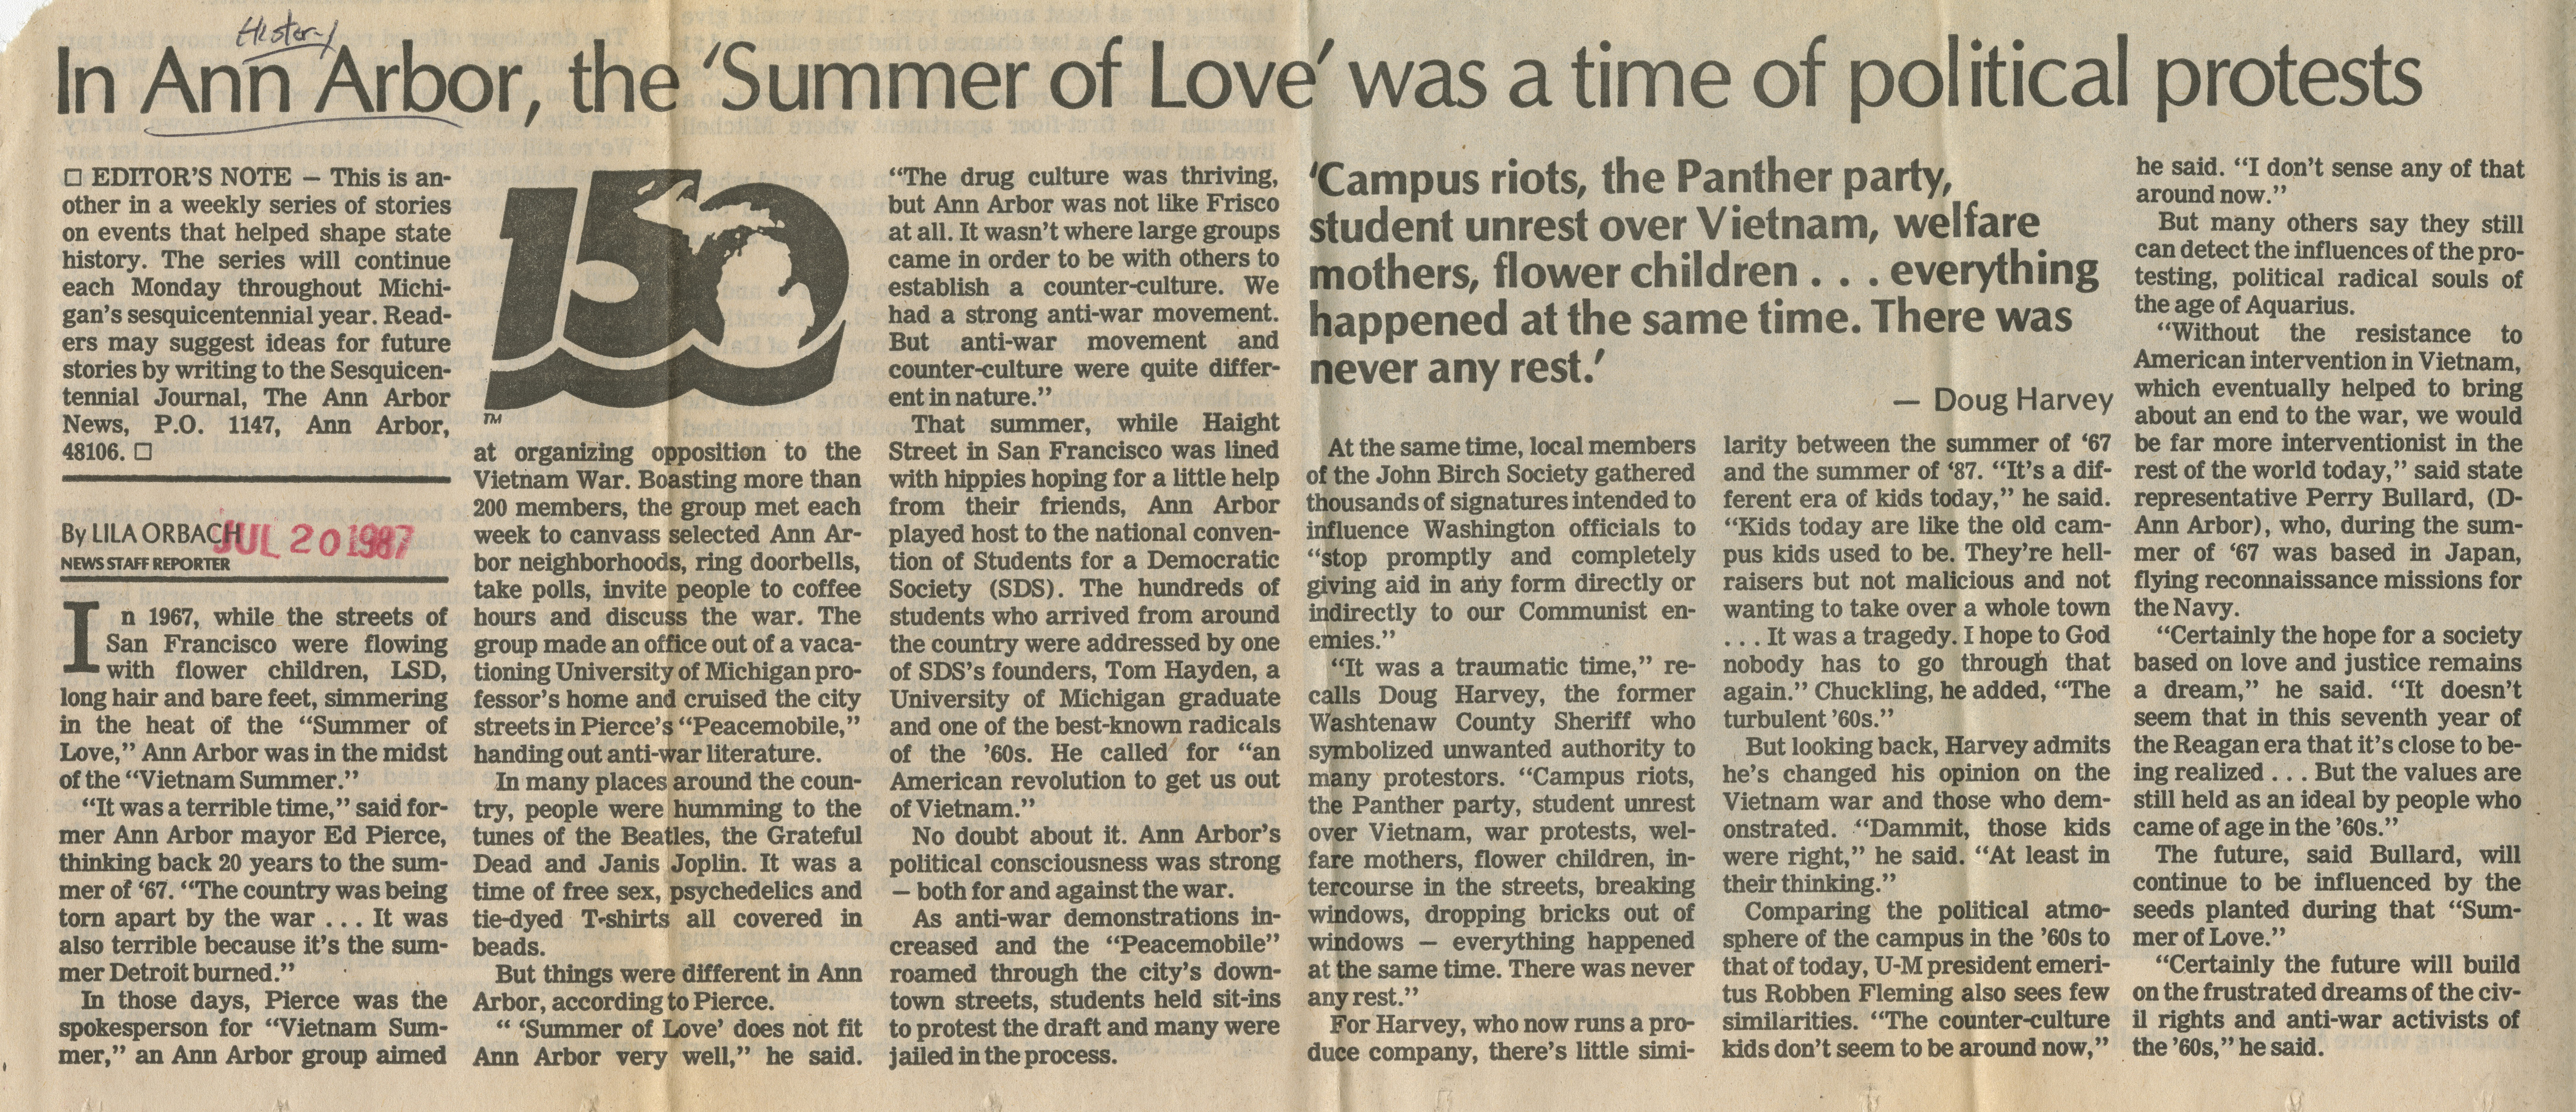 In Ann Arbor, the 'Summer of Love' was a time of political protests image